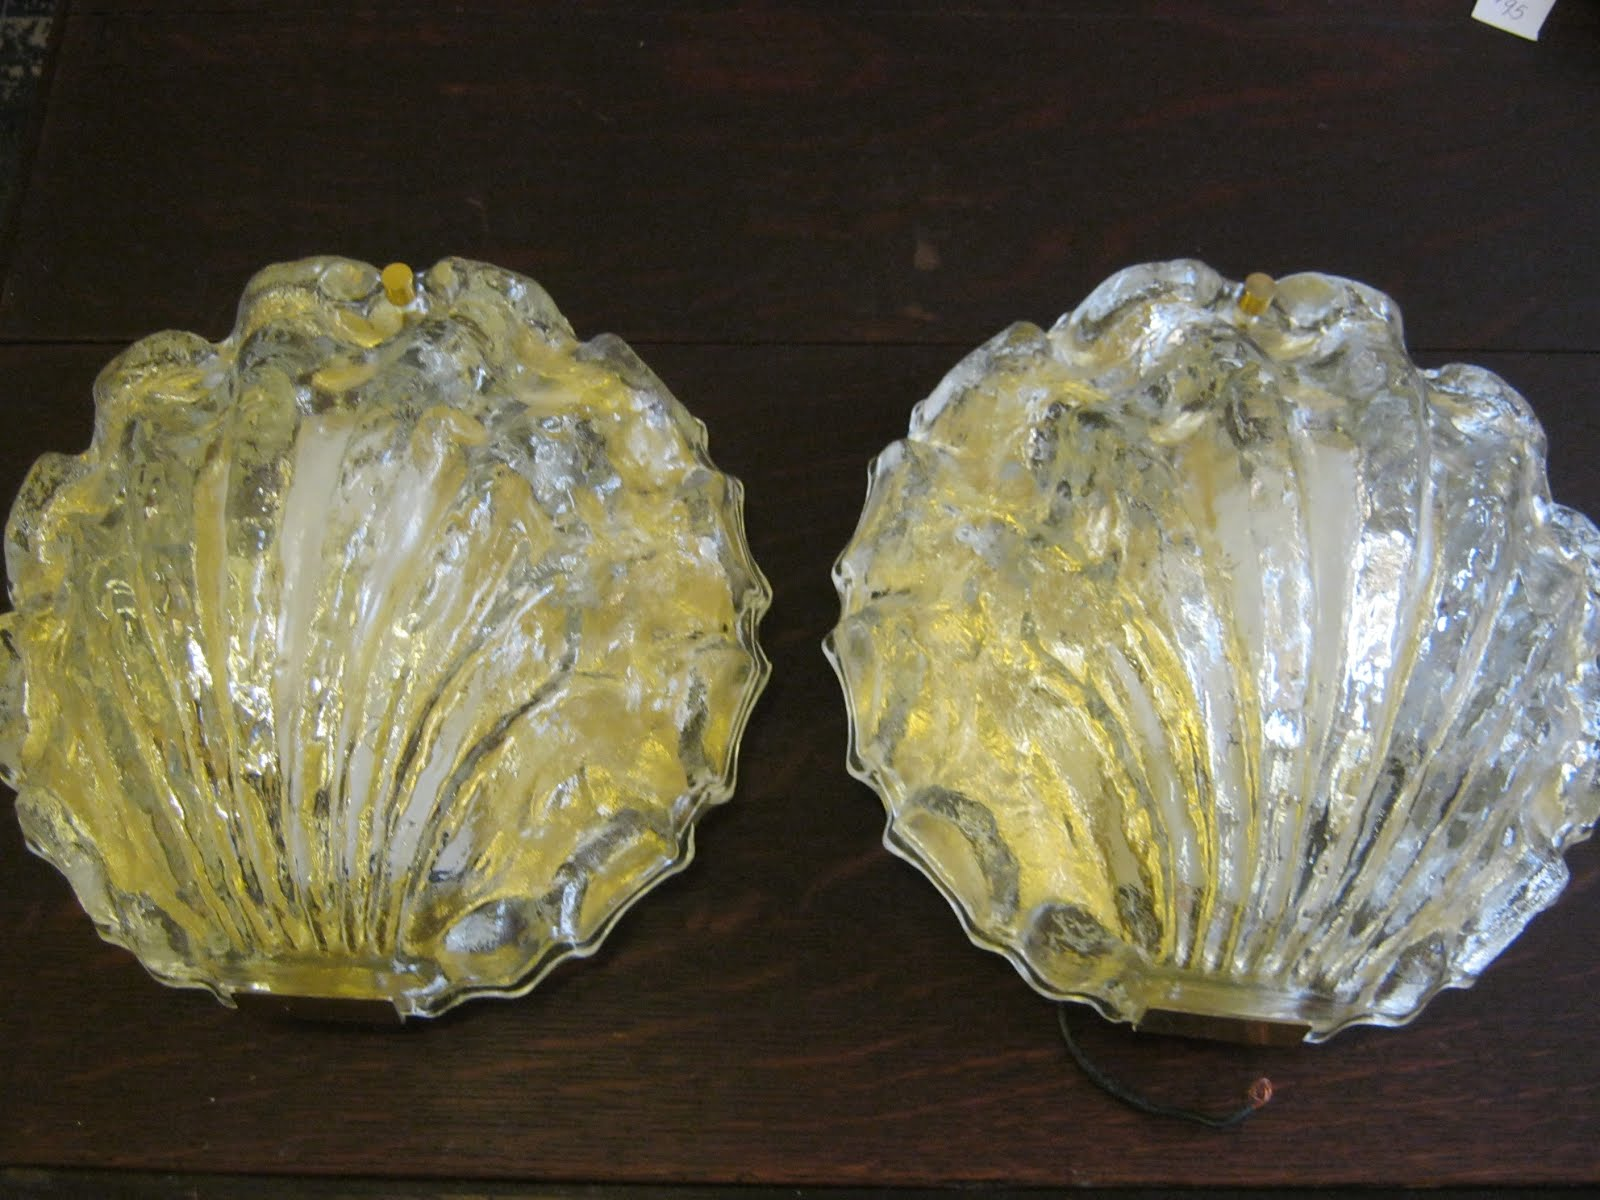 Made by Limburg Lighting of Germany circa 1970u0027s. Shell shape makes them especially fabulous in a bathroom. $150 pr. & Funk u0026 Gruven A-Z: PR. GLASS WALL SCONCES BY LIMBURG OF GERMANY